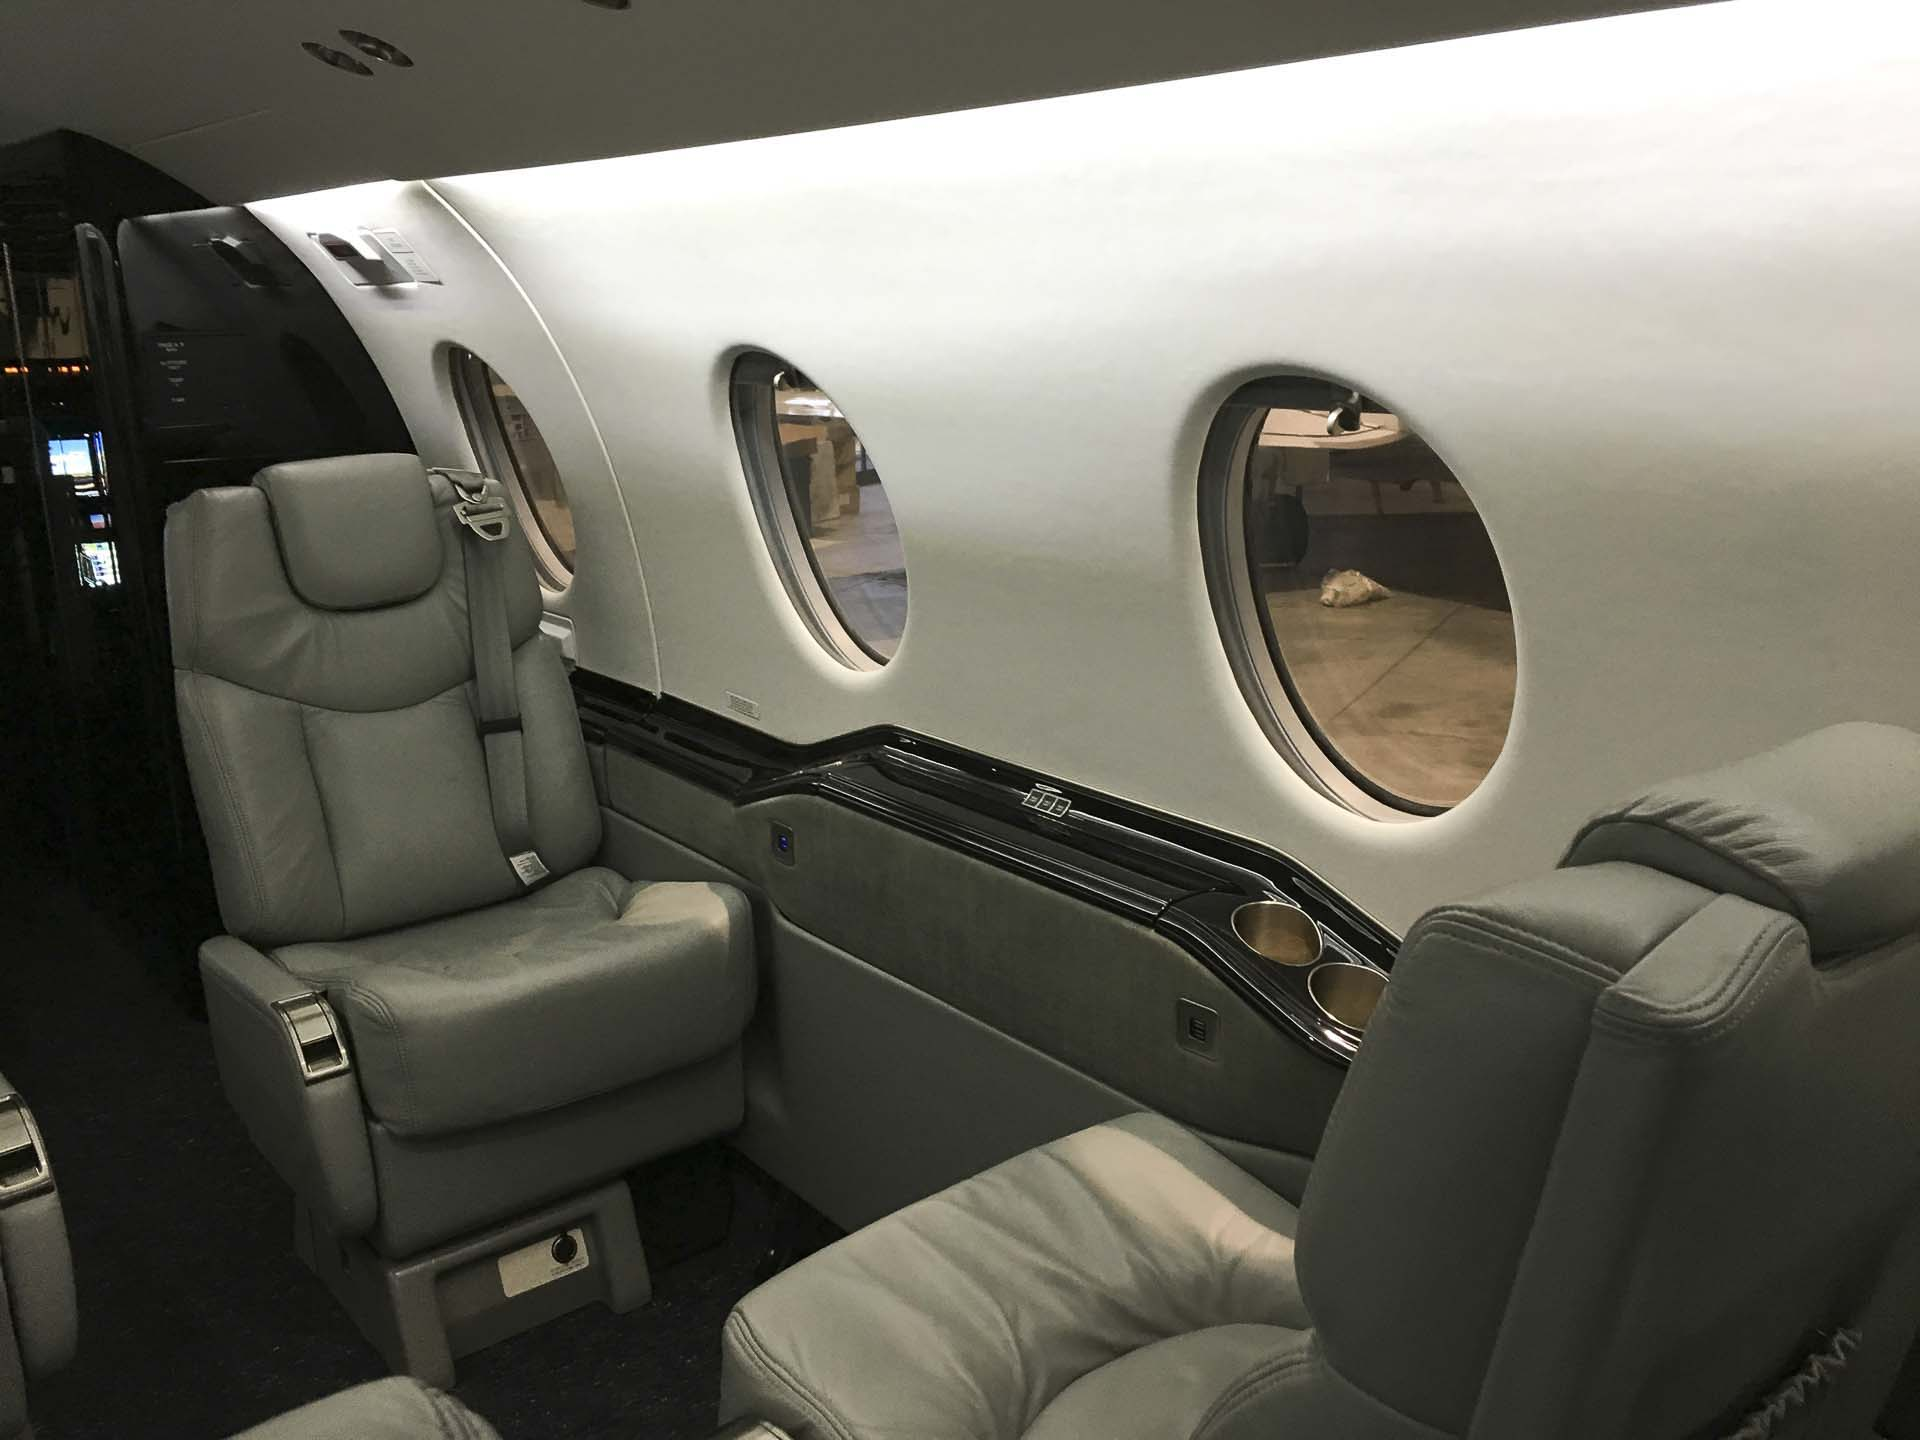 Beechjet side walls